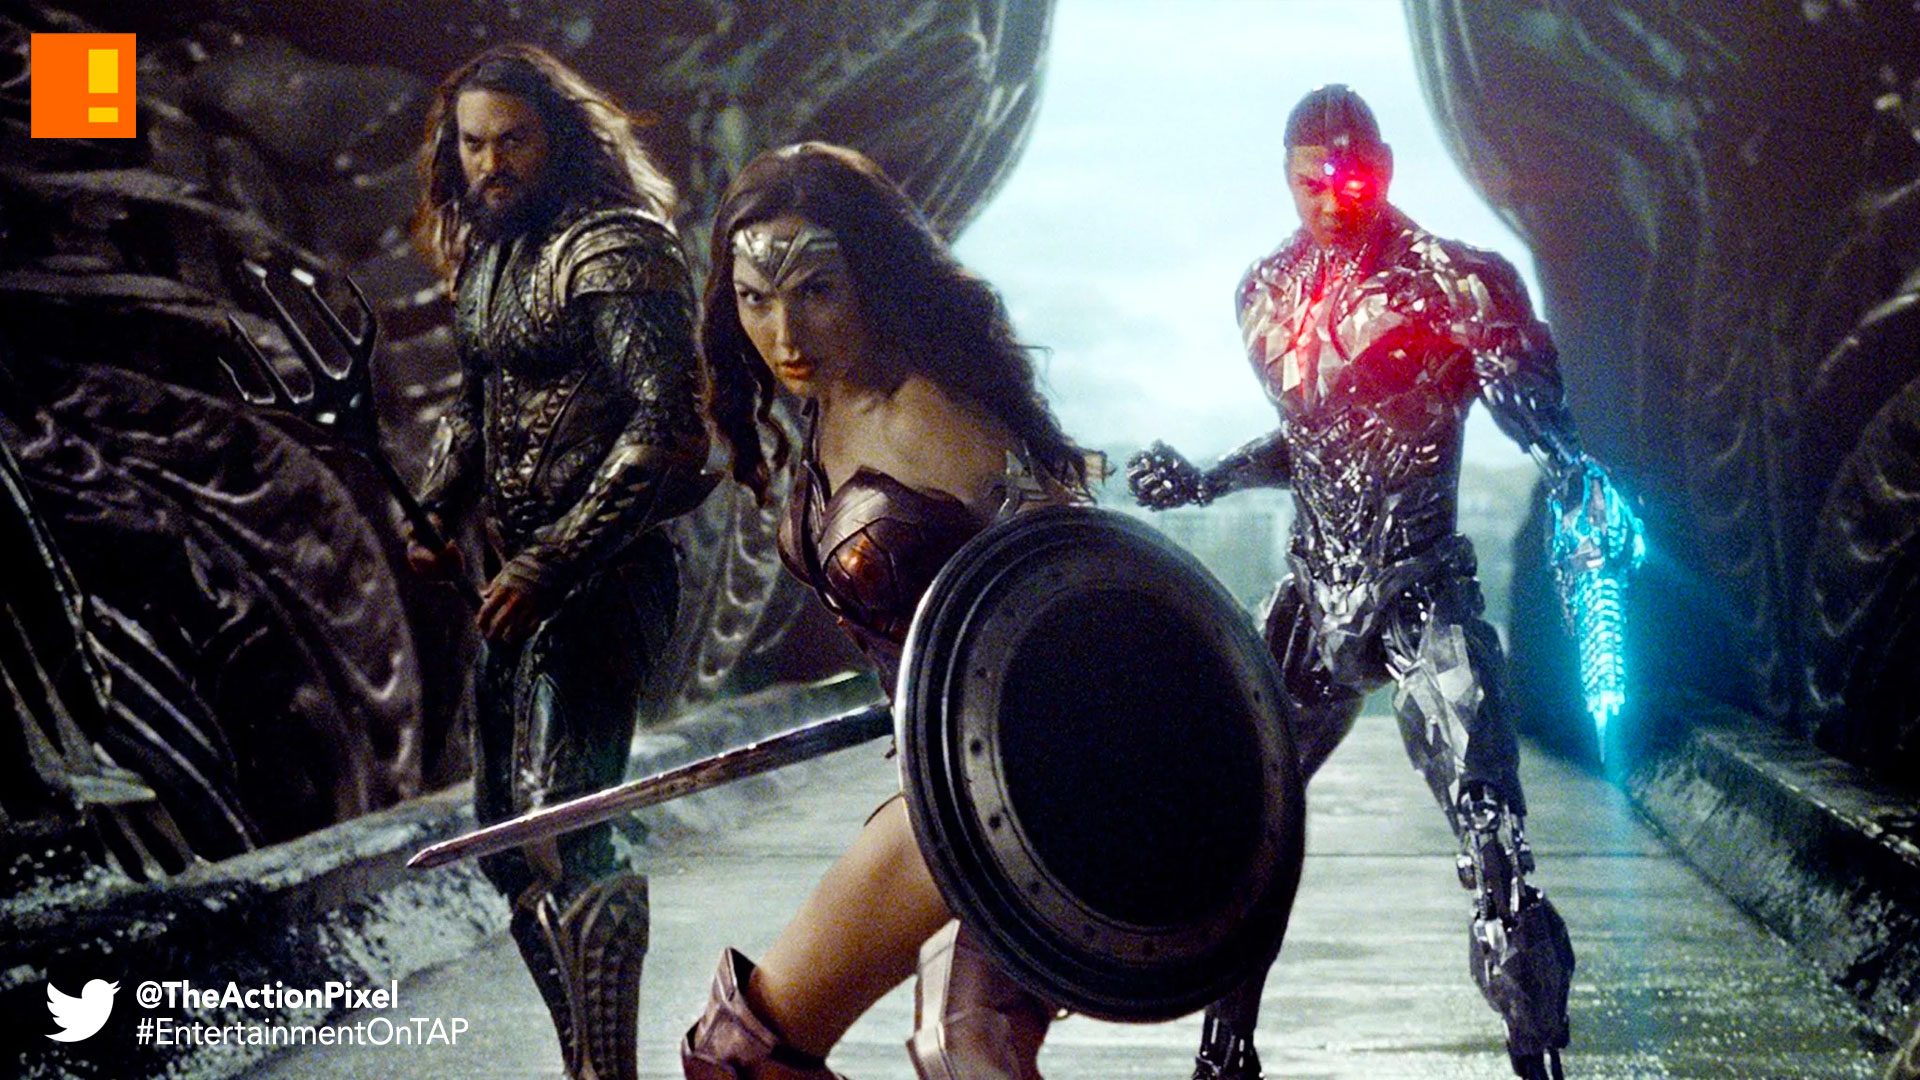 cyborg, wonder woman, aquaman, the action pixel, entertainment on tap, justice league, dc comics, zack snyder,